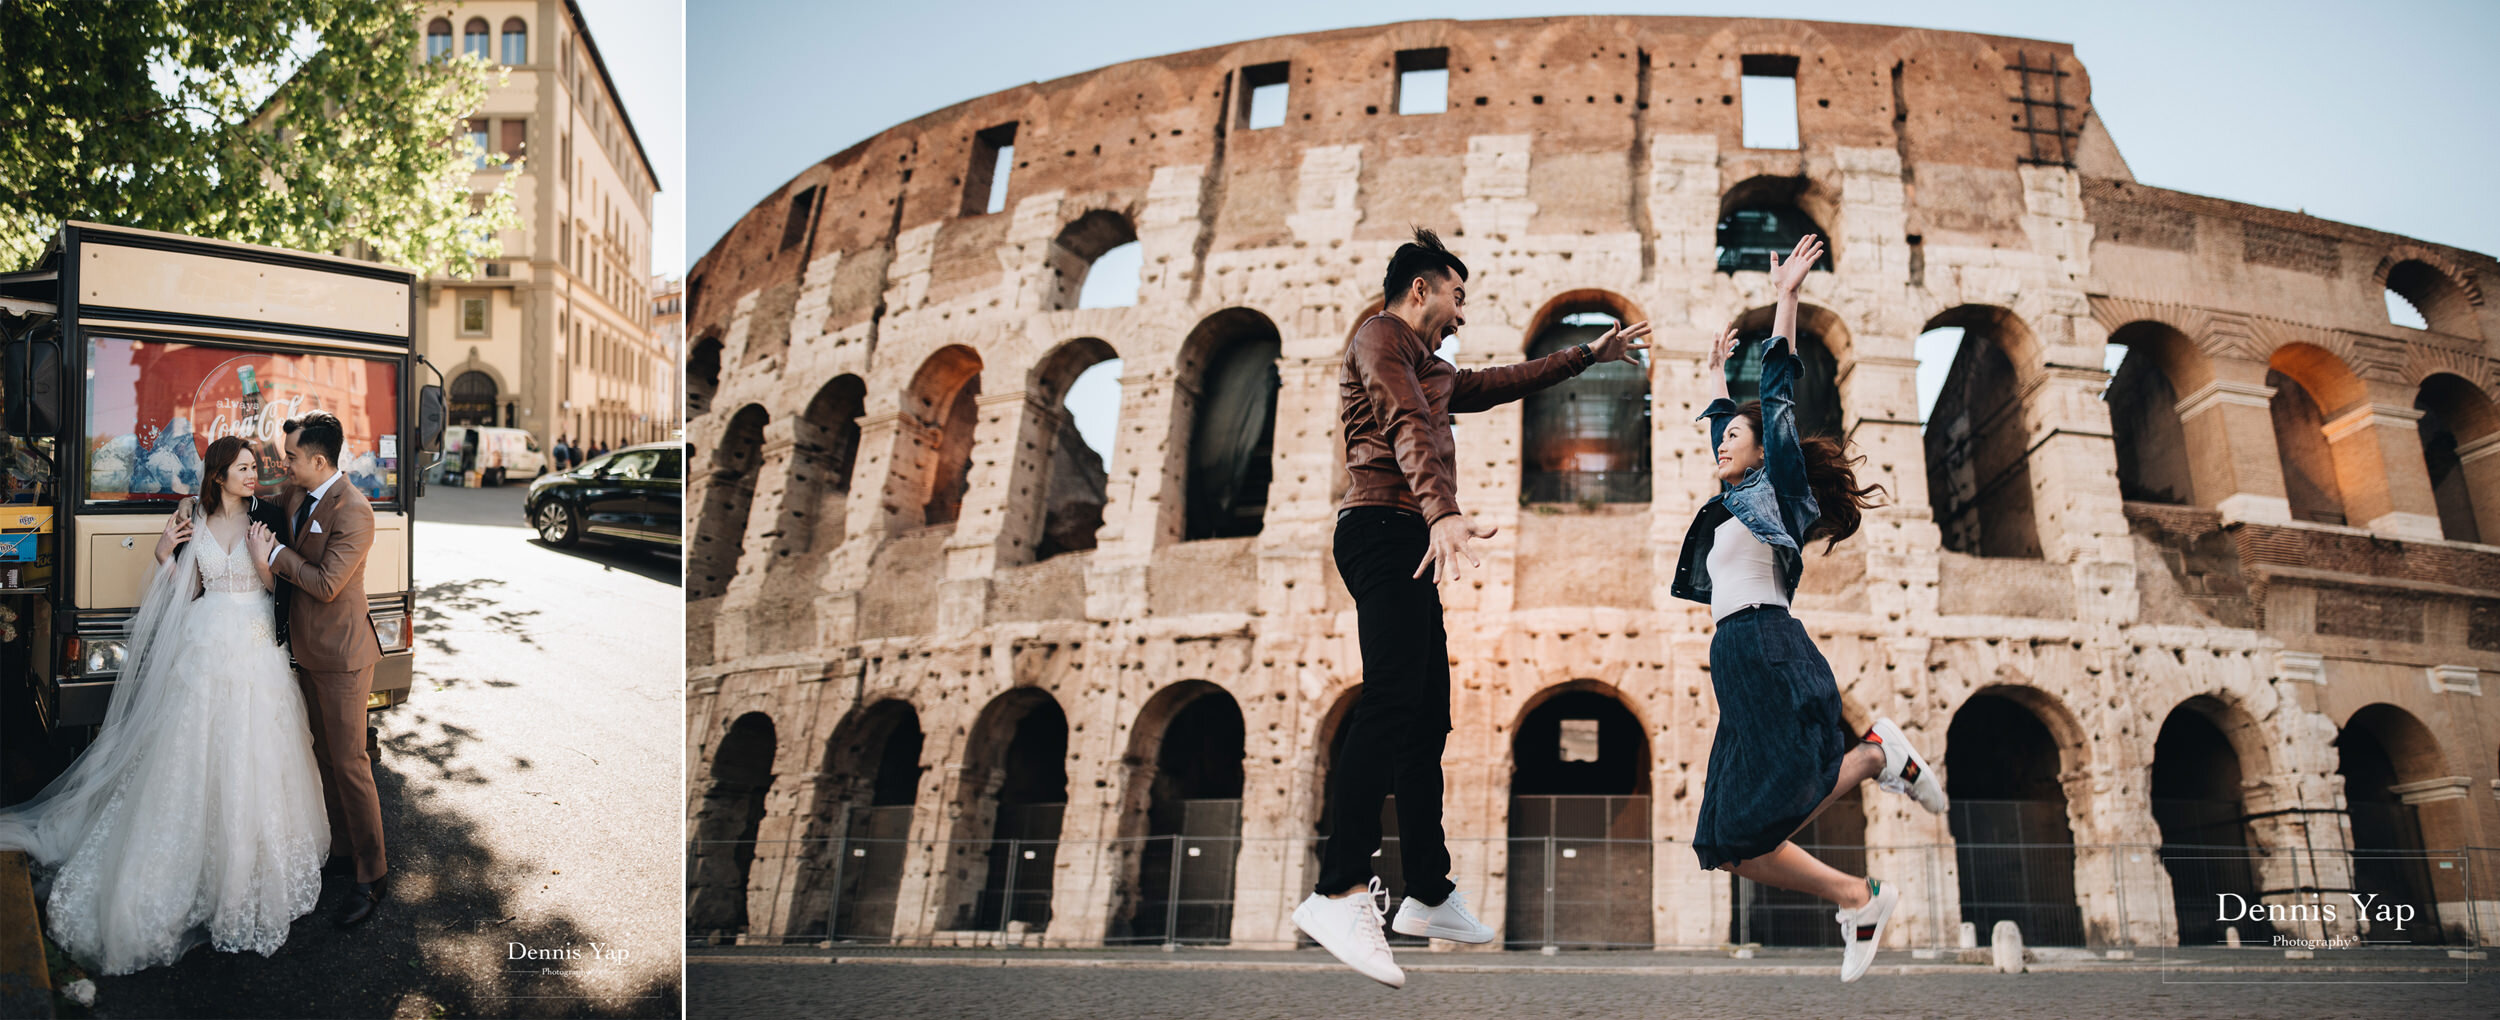 benny alicia pre wedding rome dennis yap photography classic beloved style candid natural-121.jpg